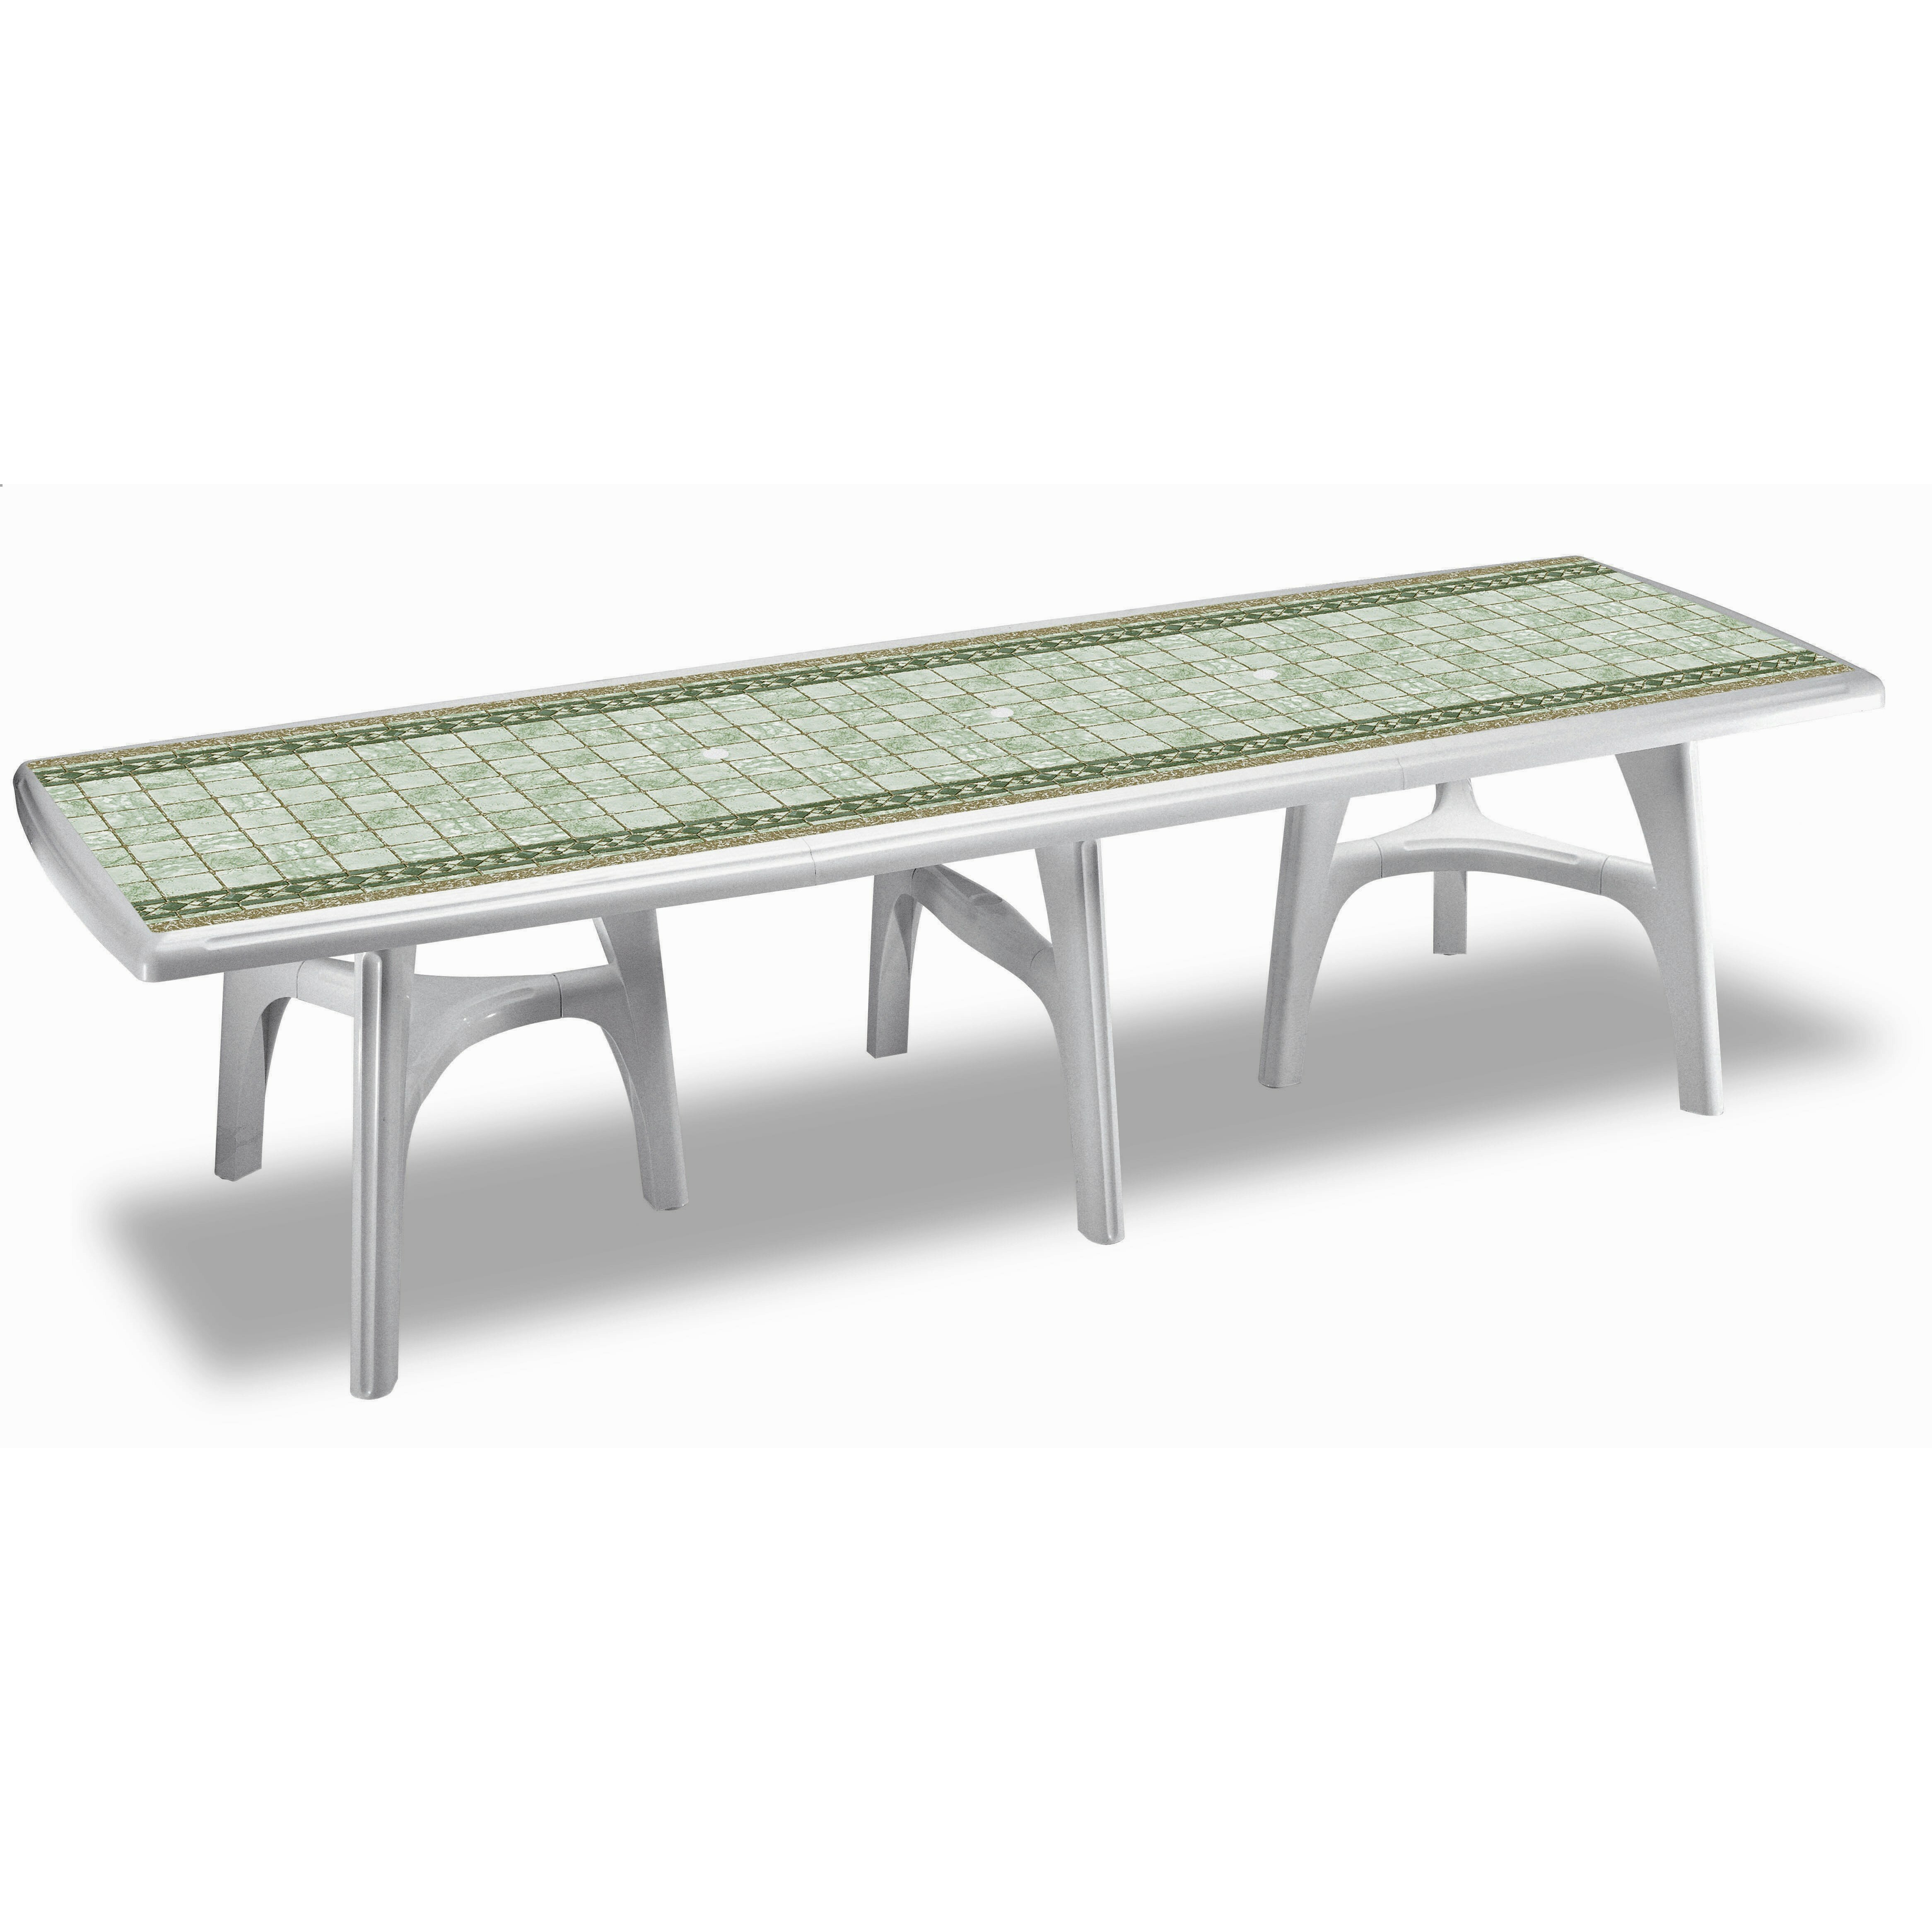 Extending Outdoor Dining Table Scab President 300cm Extending Outdoor Dining Table Wayfaircouk